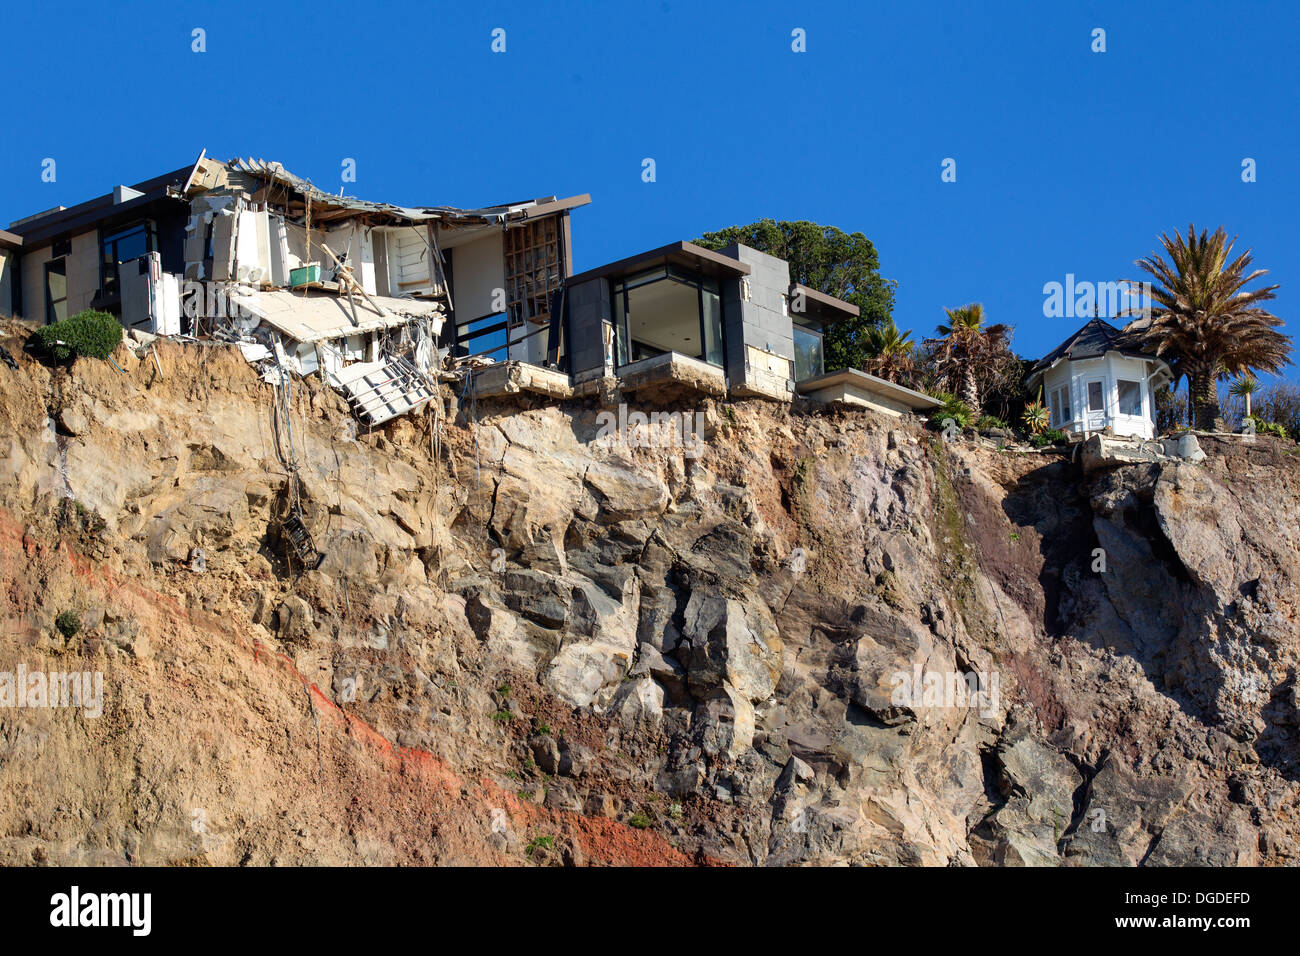 Christchurch earthquakes, Sumner - Stock Image